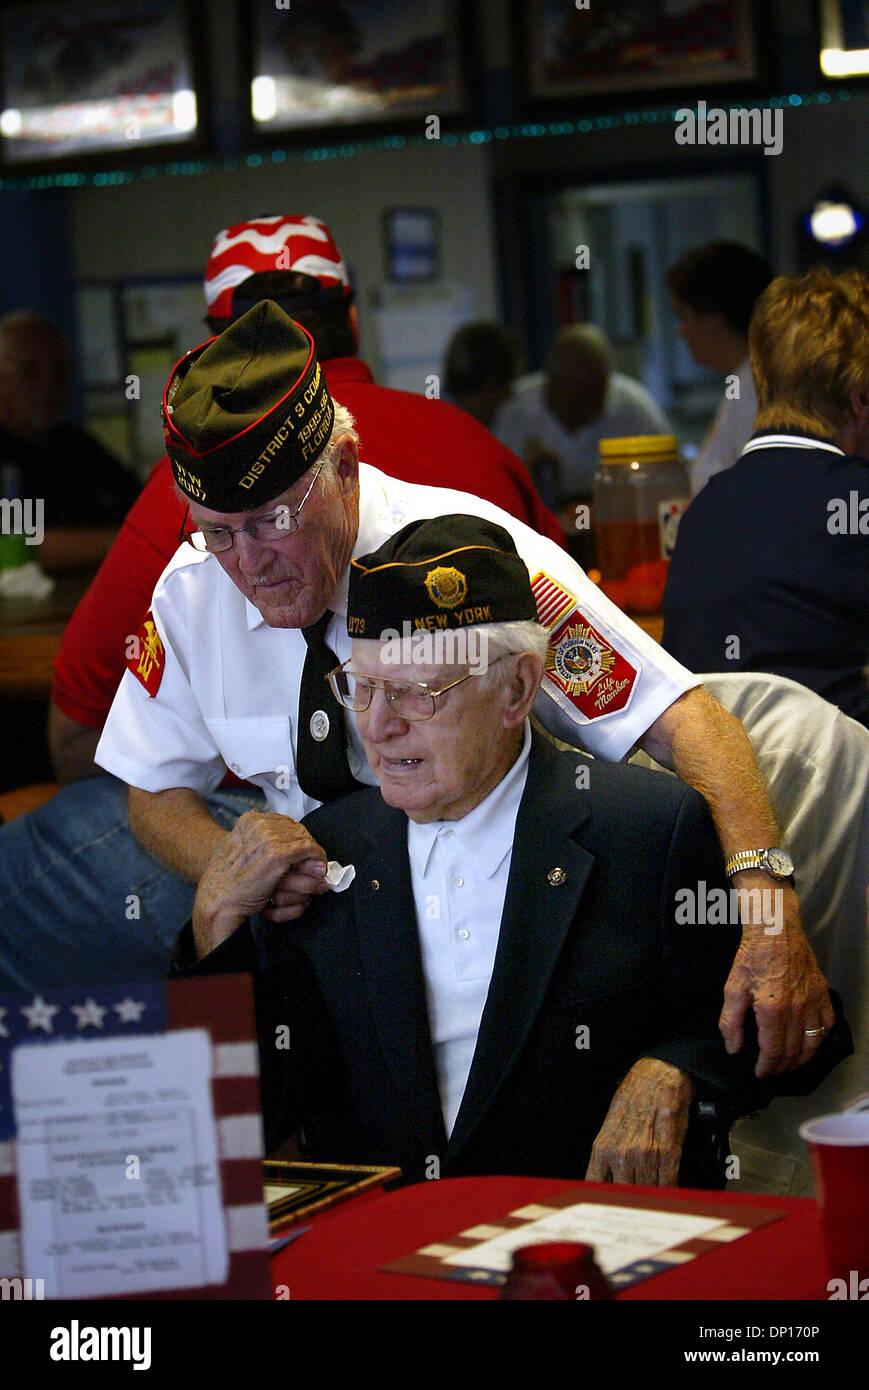 Apr 22, 2006; Lake Worth, FL, USA; American Legion Post 47: During a 'Appreciation Day Ceremony' at American - Stock Image